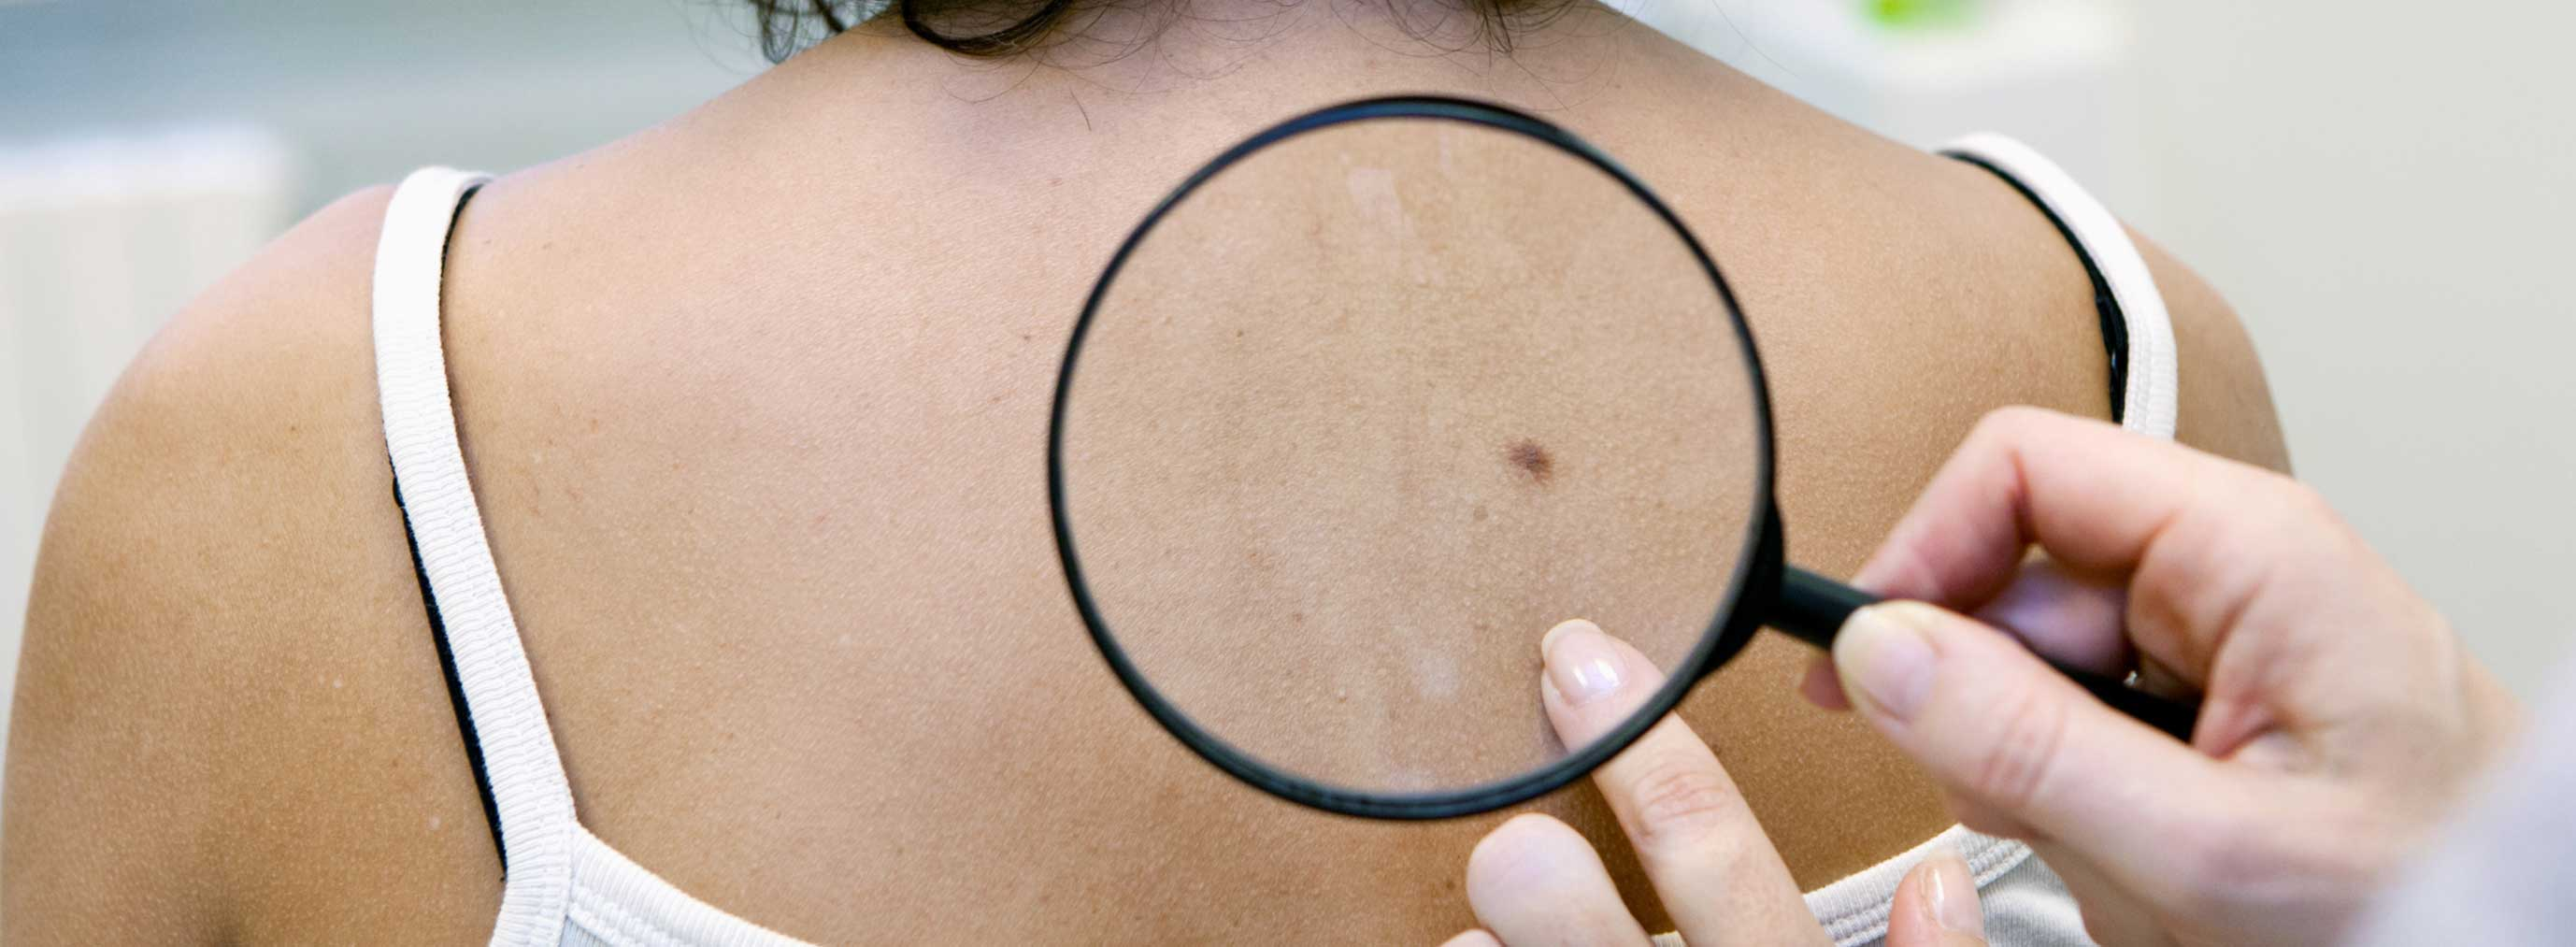 Skin cancer clinic. We can check your moles and skin for cancer at our Brisbane medical centre.